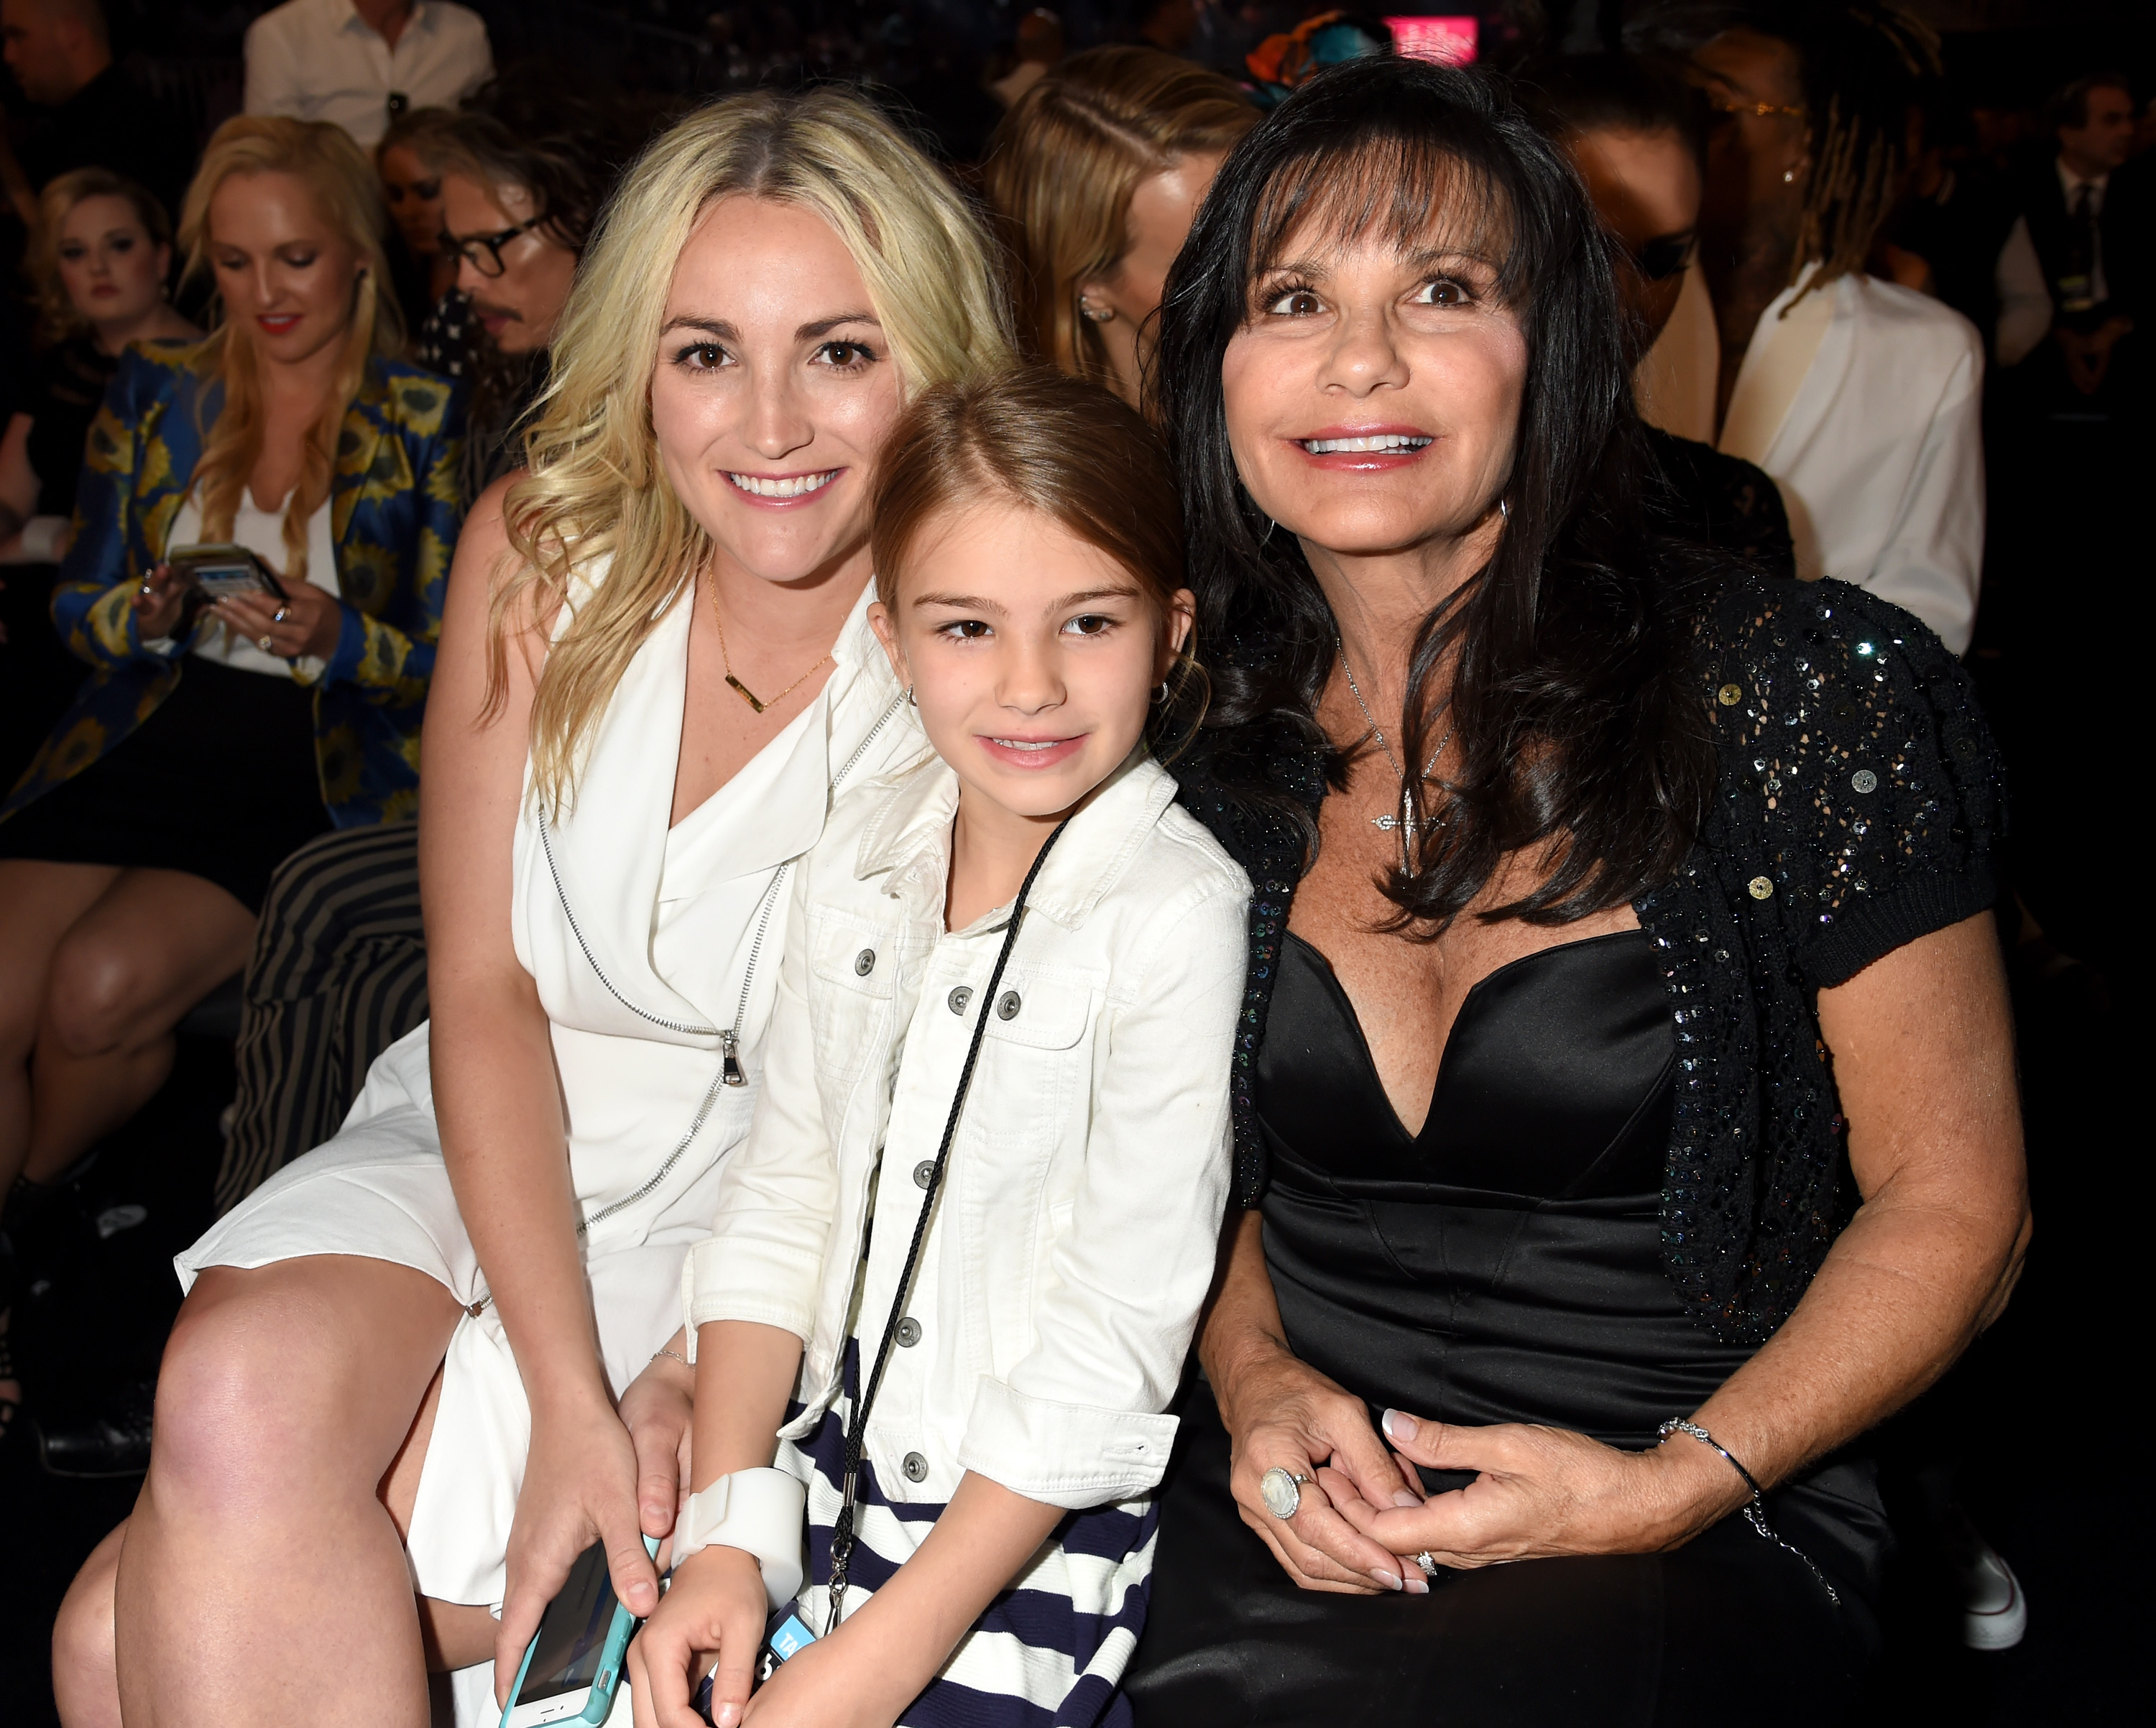 Jamie Lynn Spears and her Daughter Maddie